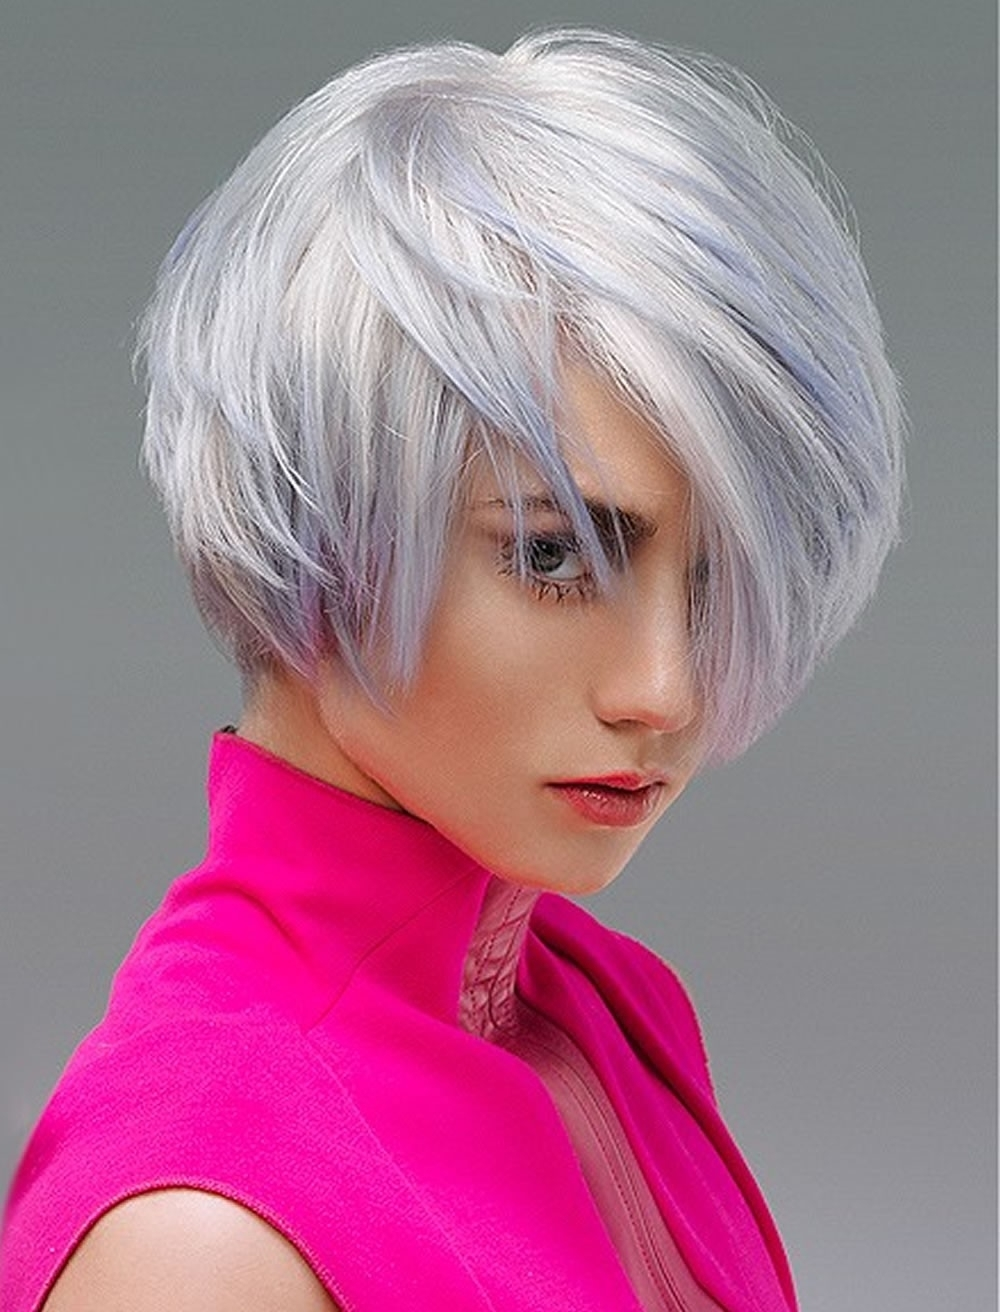 Asymmetrical Bob Hairstyles 2019–2020 Custom Images; | 30+ Stylish Medium Asymmetrical Bob Hairstyles